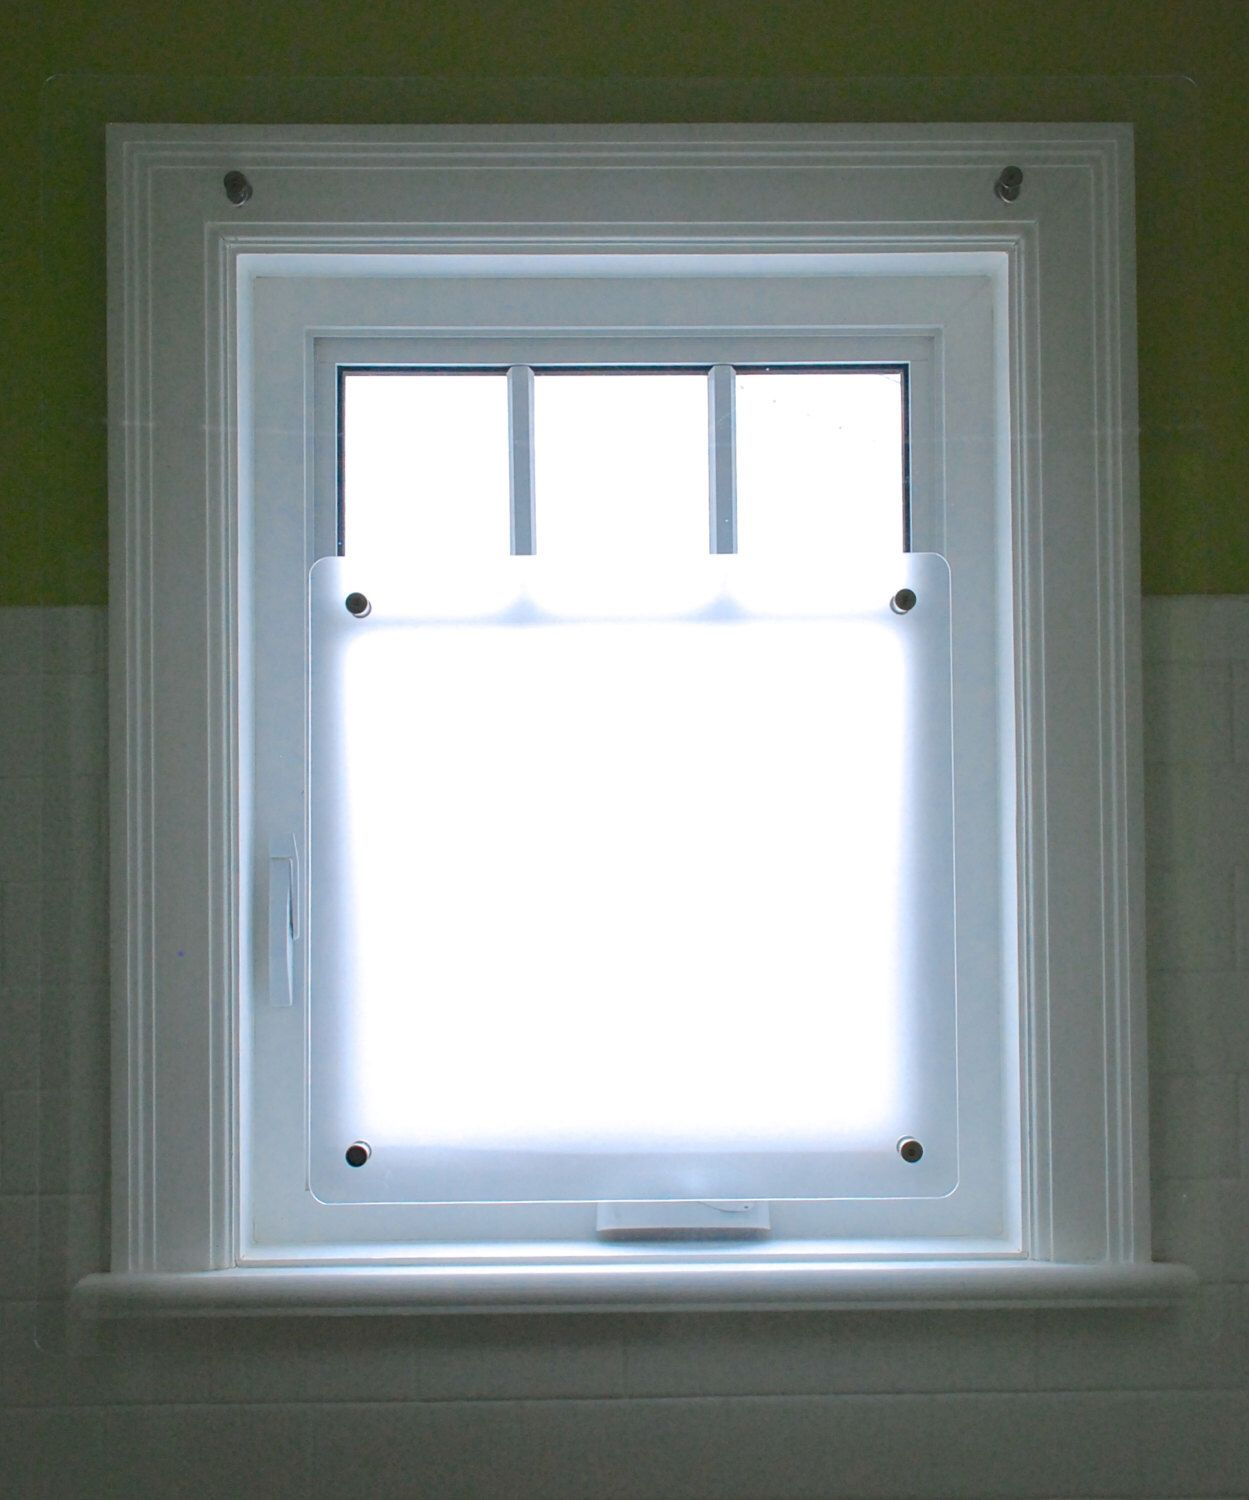 Shower Window Screen Protects Your And Woodwork But Does Not Hide Them Ensure Privacy Lets Sunlight In Custom Made For You